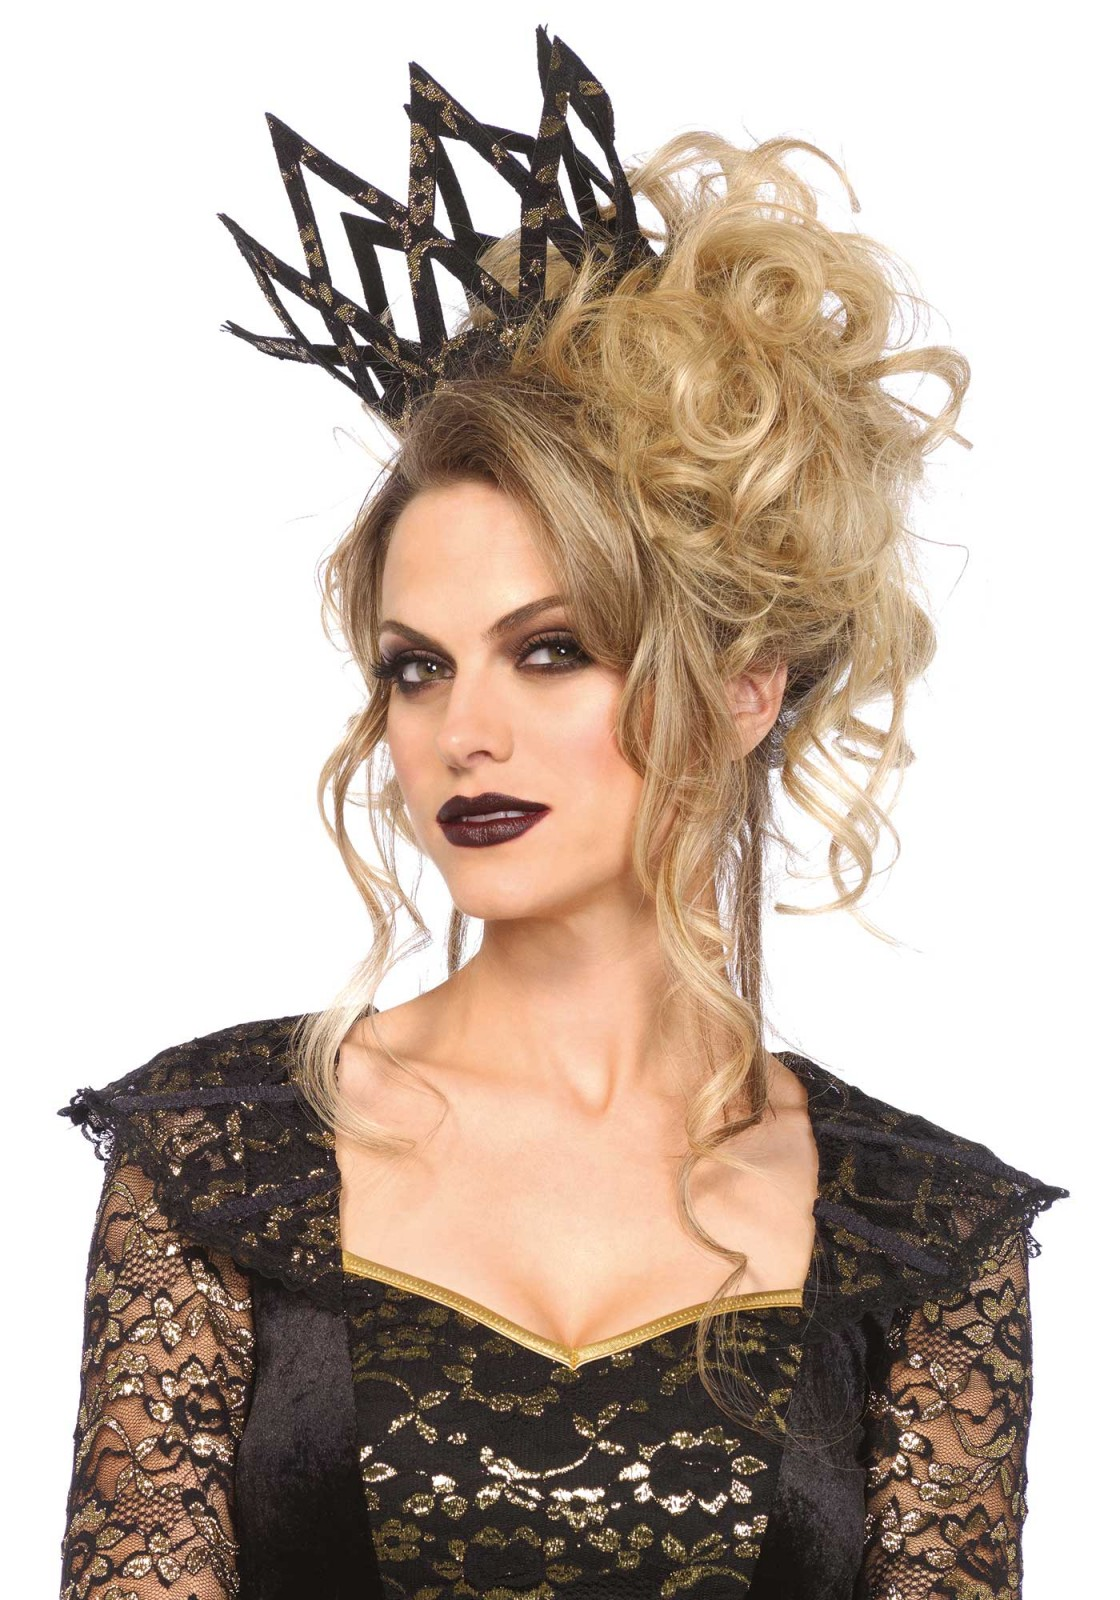 This crown is for the most powerful queens among us. This crown is covered with metallic lace. You have to secure this crown with bobby pins. Please take note that the bobby pins are not included.